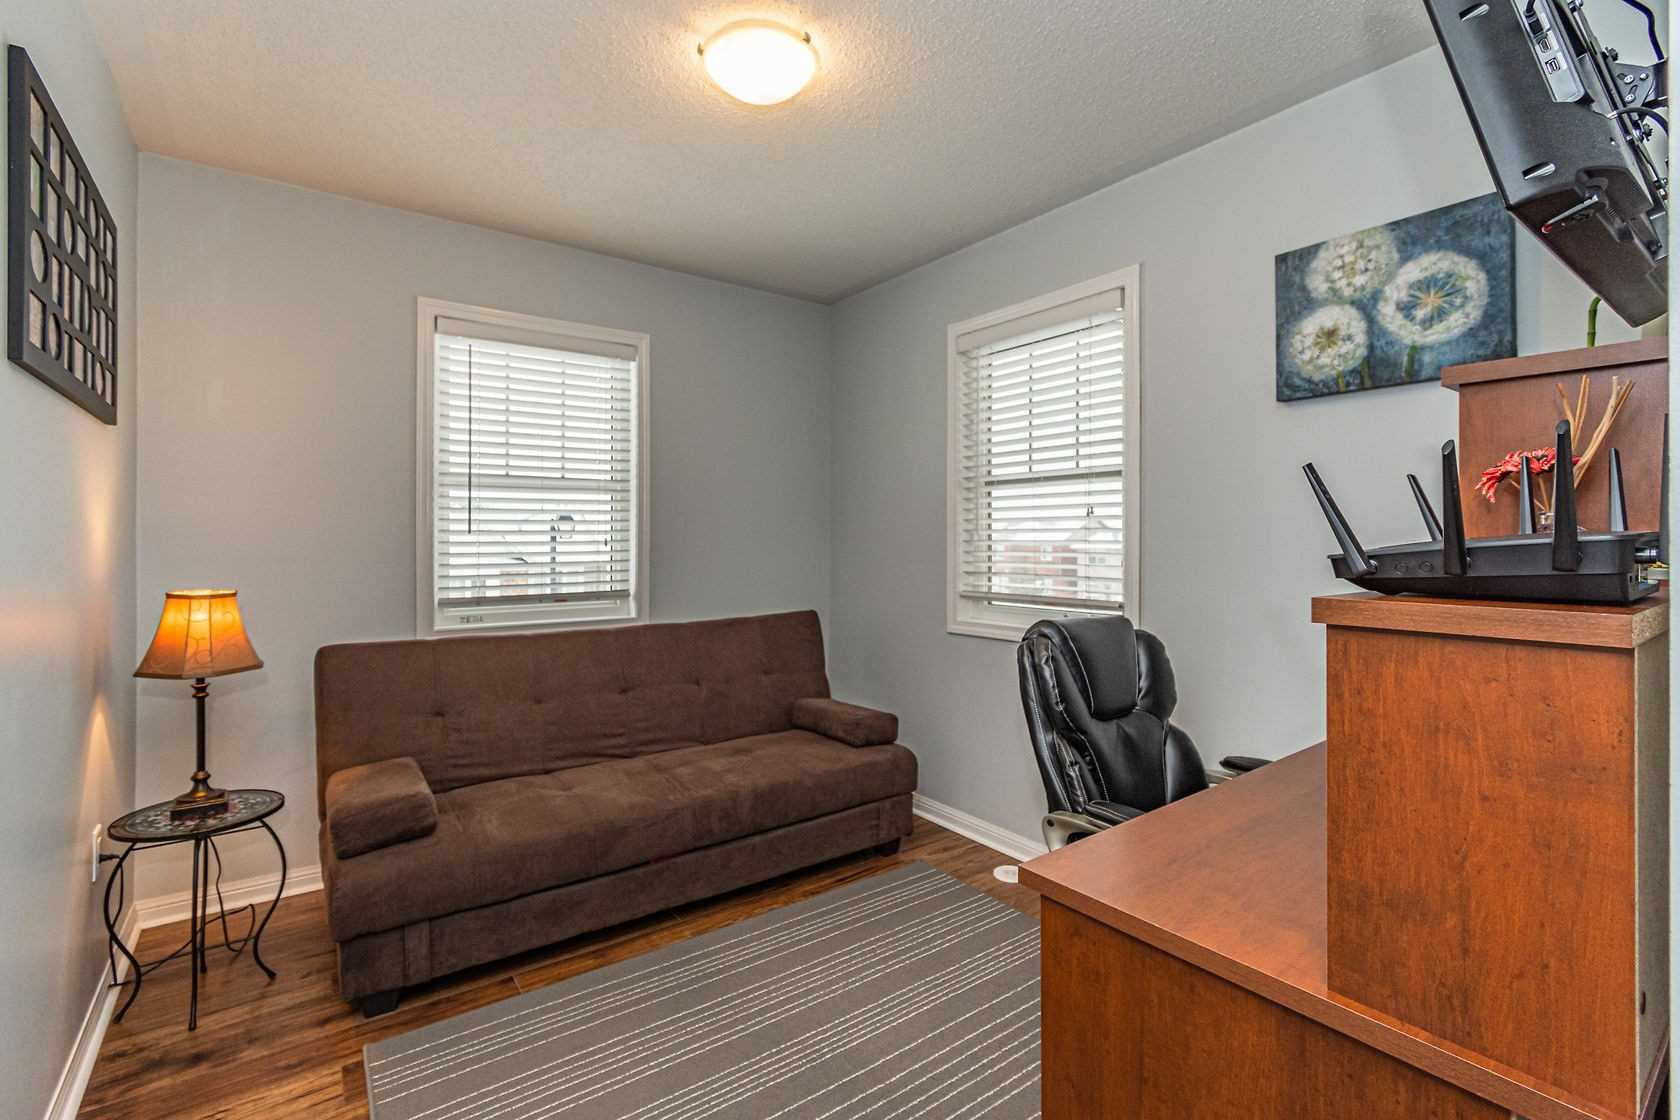 Image 10 of 20 showing inside of 3 Bedroom Att/Row/Twnhouse 3-Storey house for sale at 912 Ambroise Cres, Milton L9T0M2